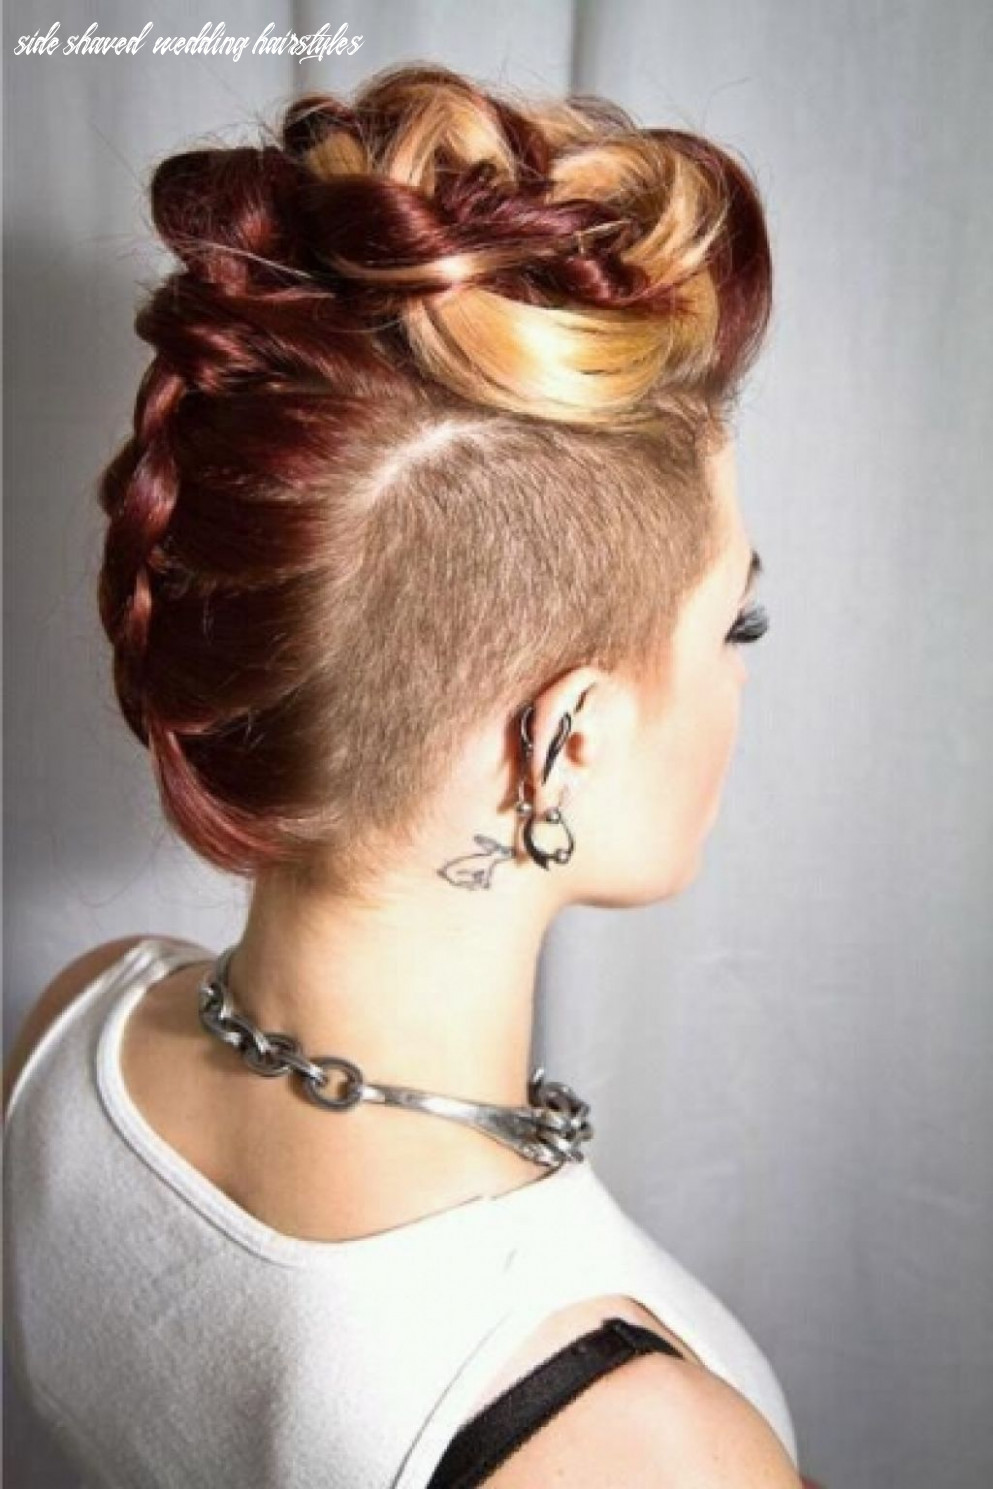 New wedding hairstyles – the trendiest looks for brides | shaved